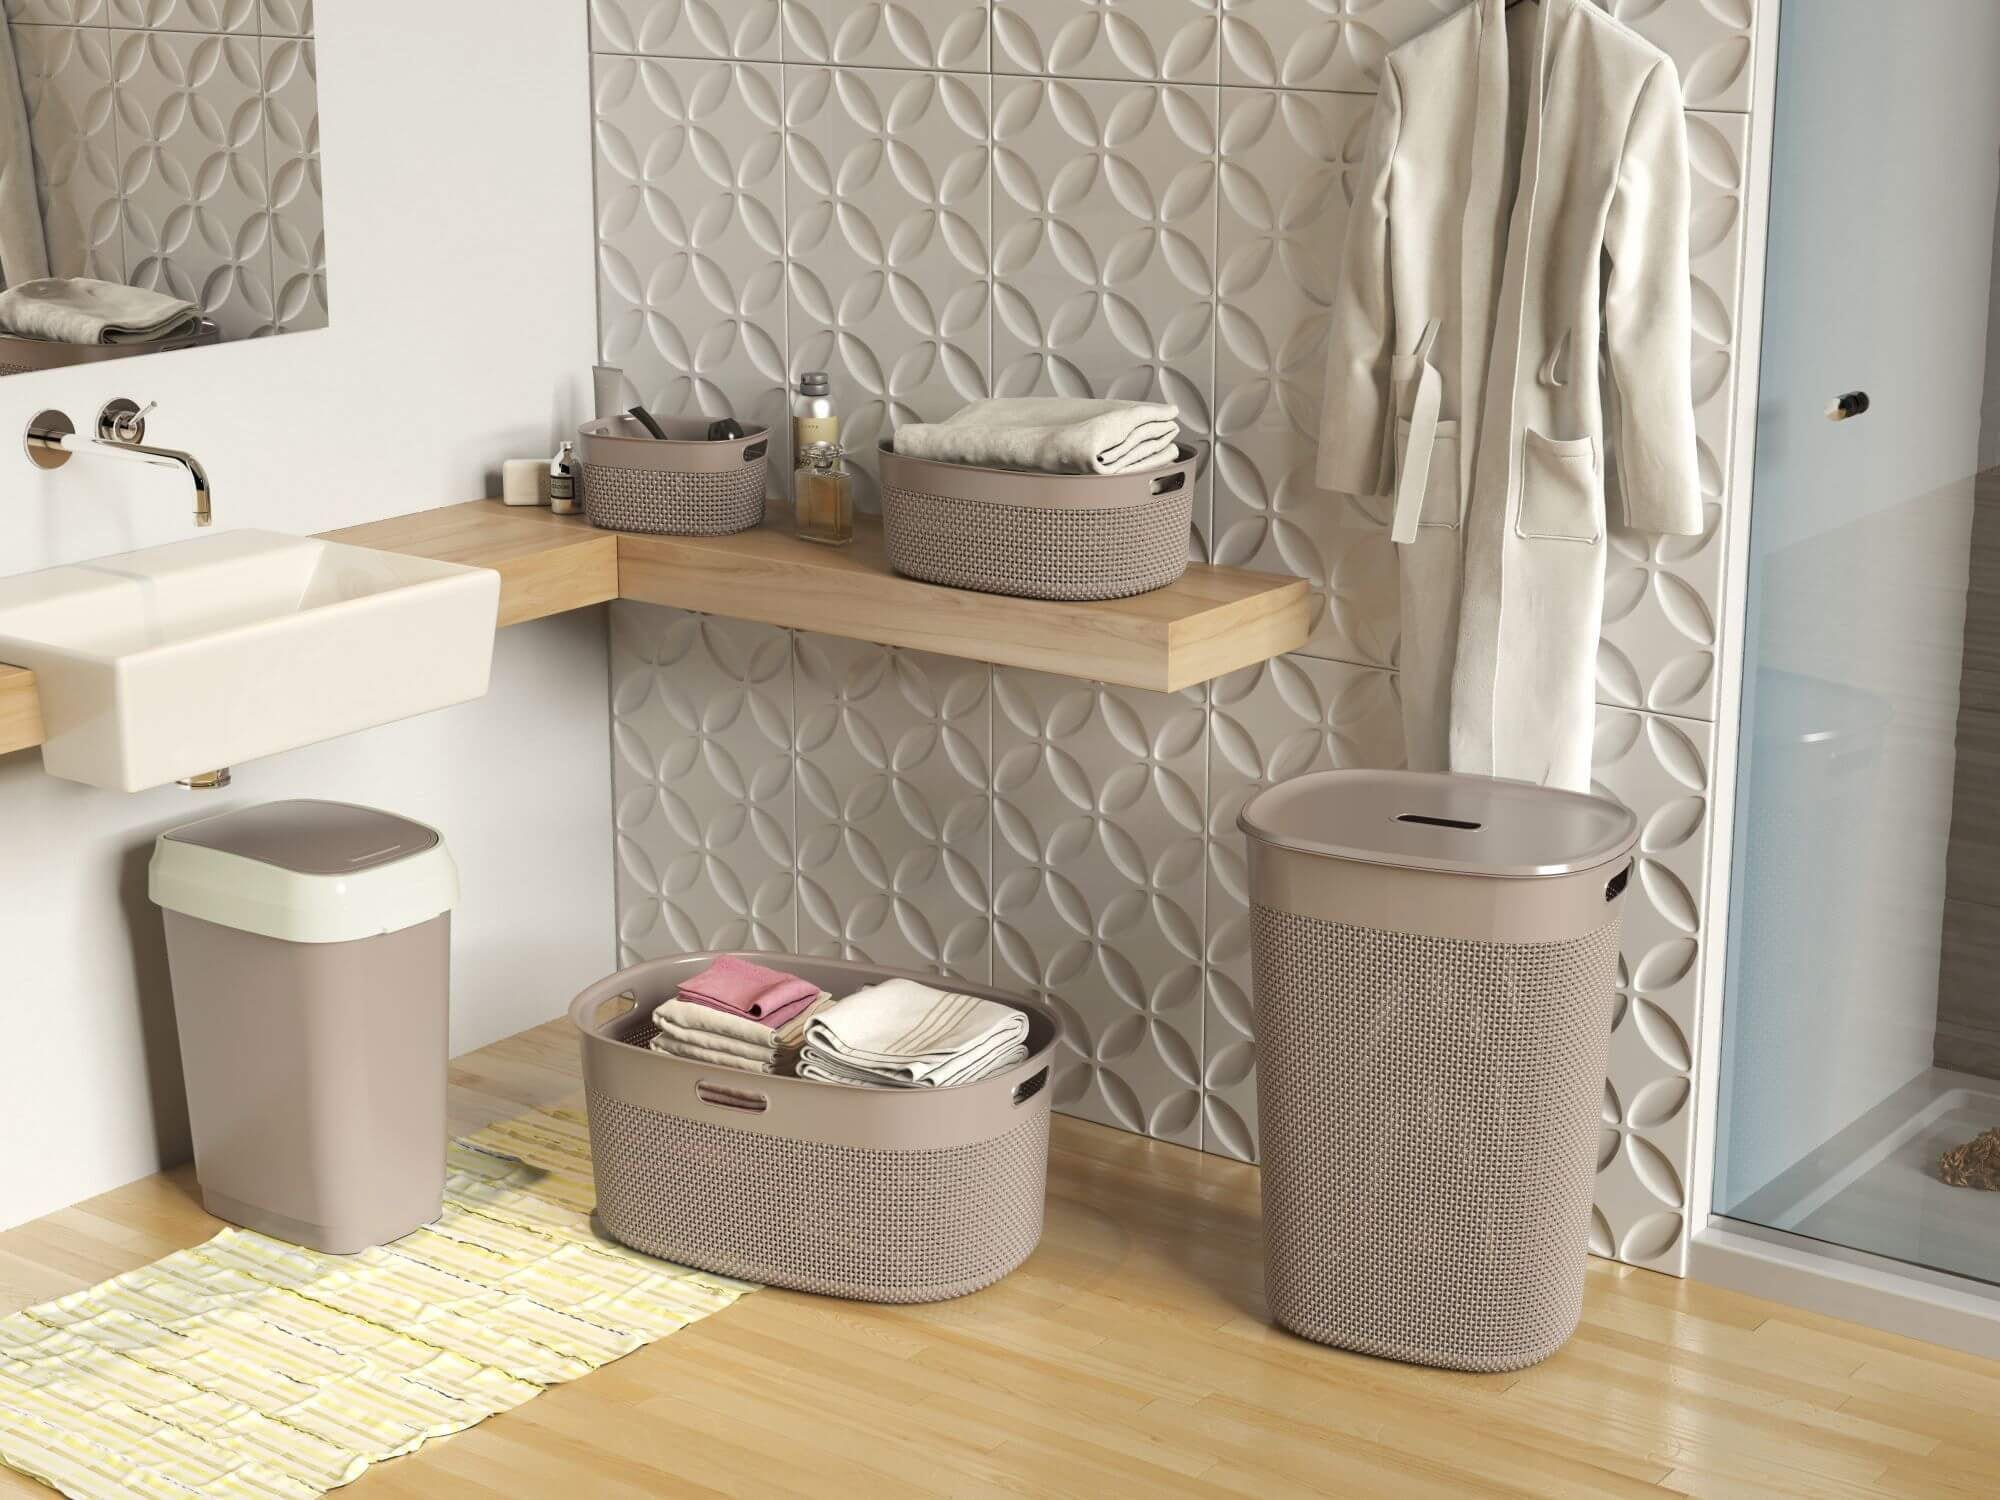 Curver Kis Filo wasbox 55 liter colonial taupe